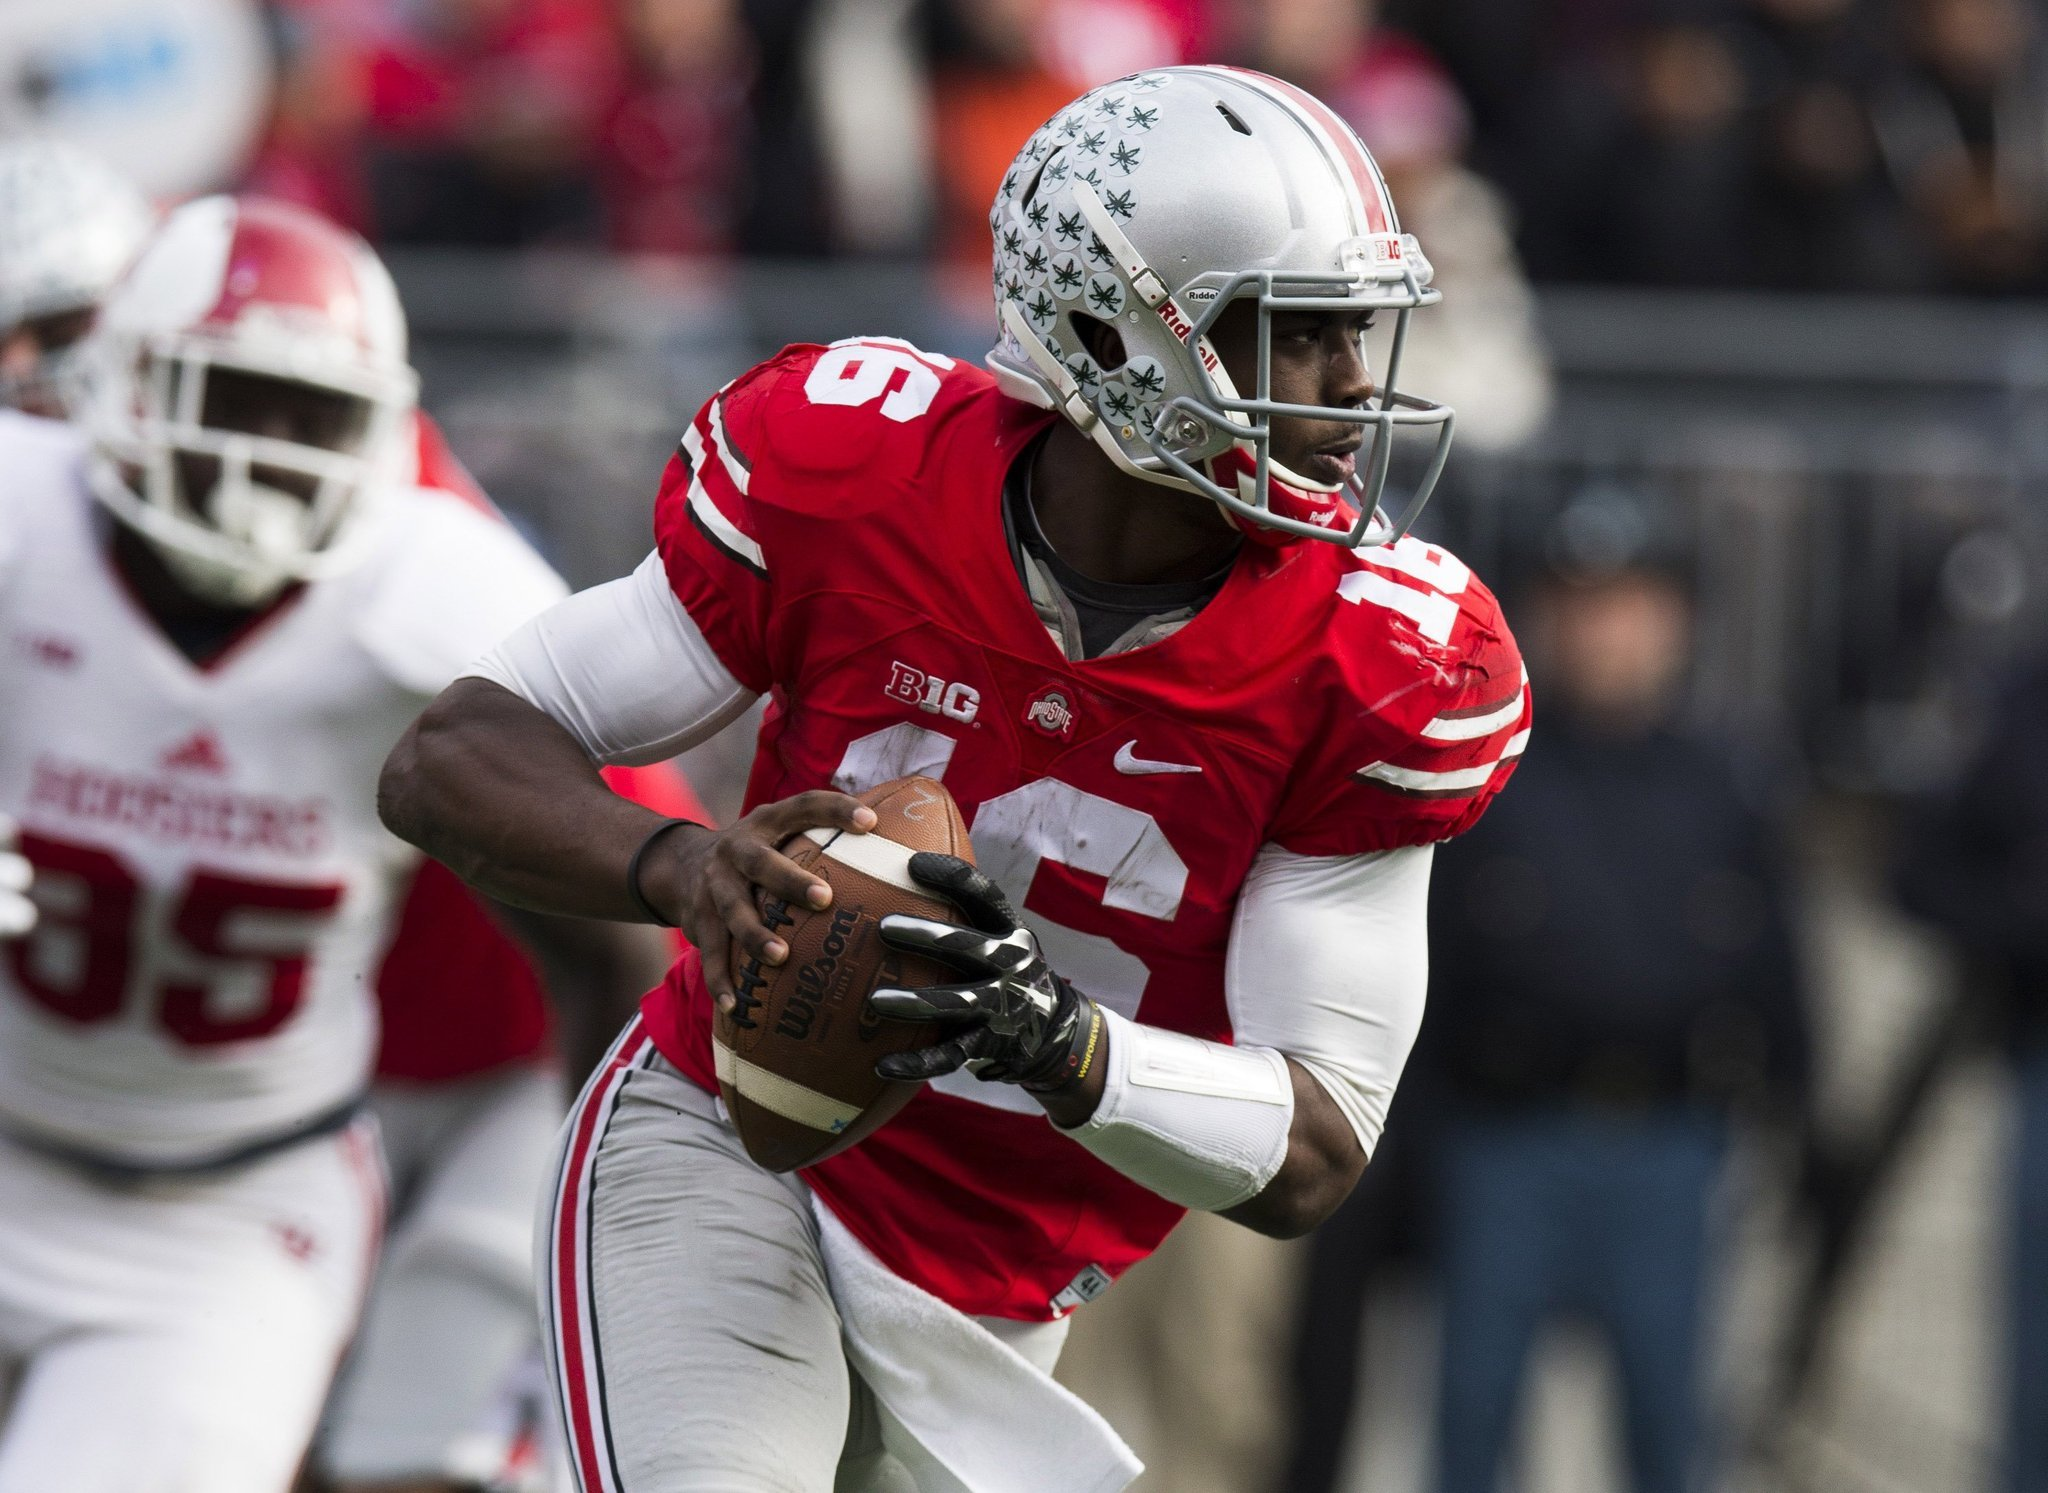 Ohio State rallies, clinches East title